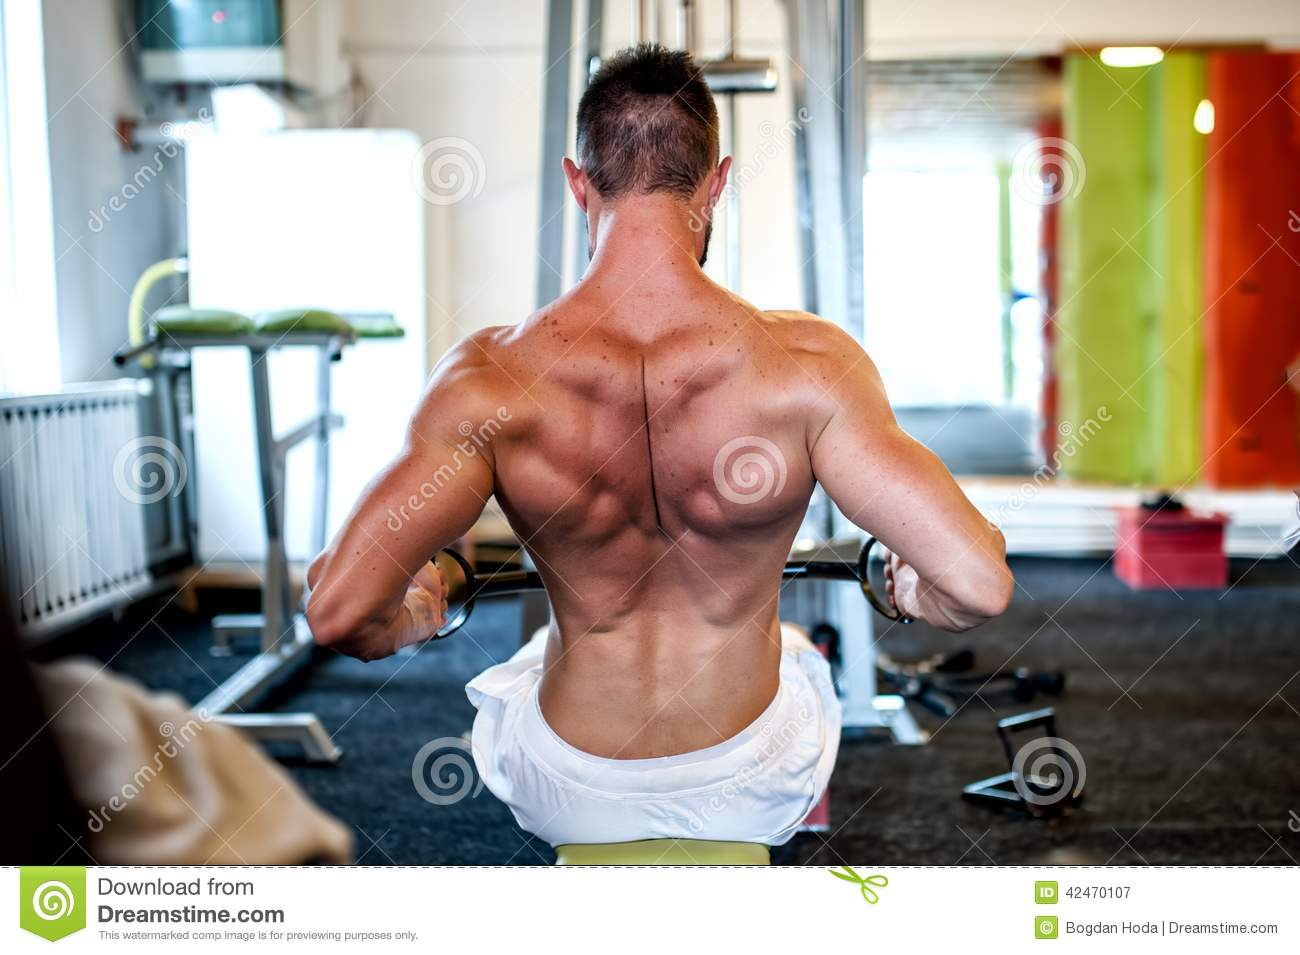 ... Photo: Muscular man on daily workout routine at gym, close-up of back